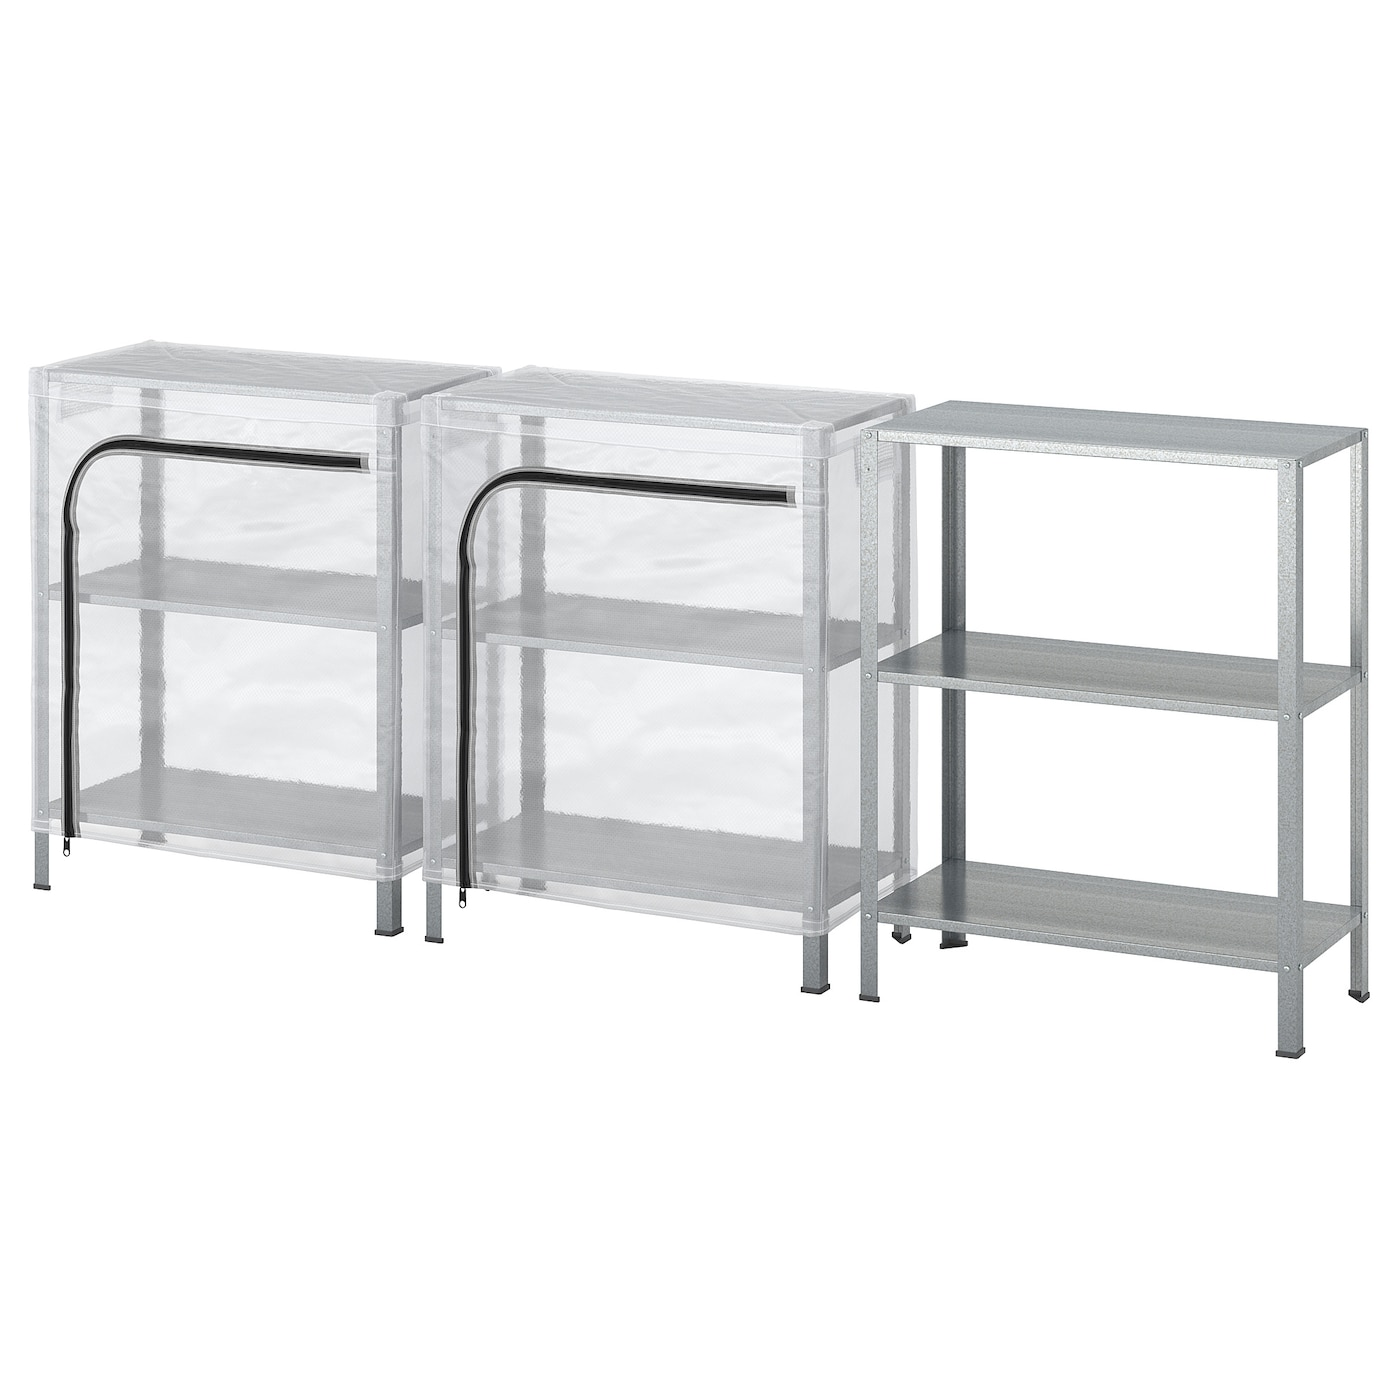 IKEA HYLLIS shelving units with covers The cover is easy to put on and remove.